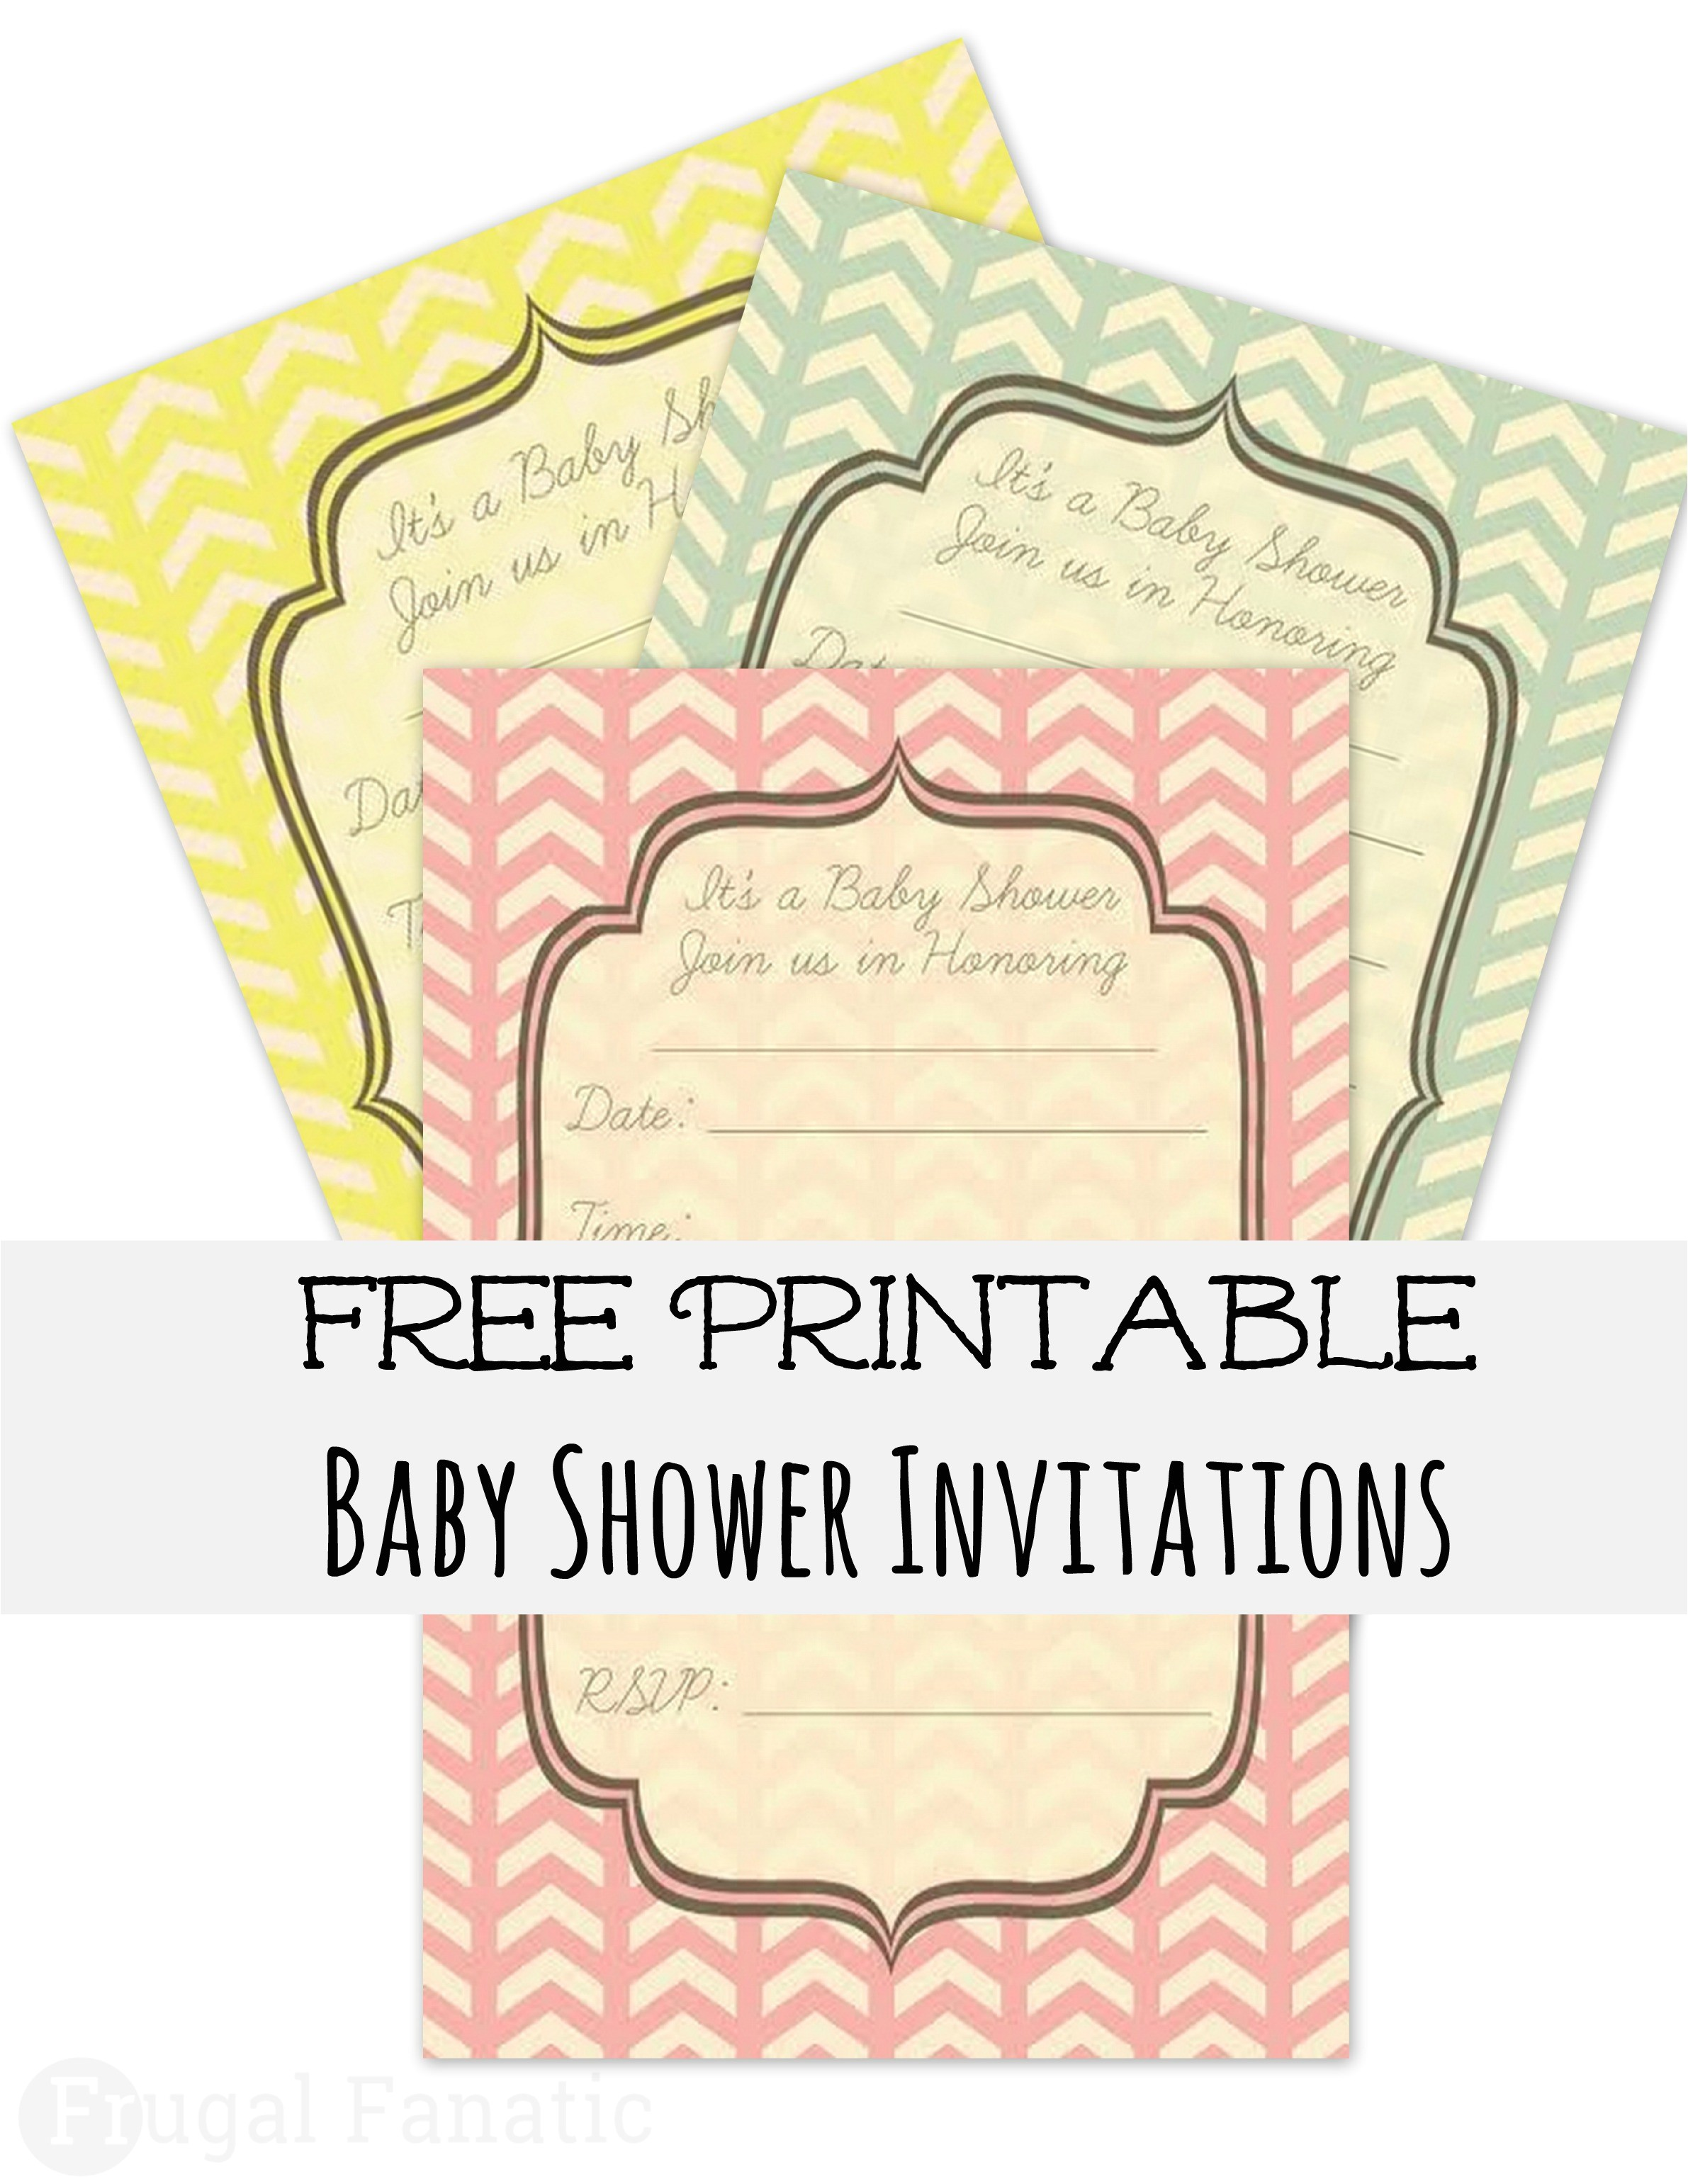 Make Your Own Baby Shower Invitations Free Printables Free Baby Shower Invitations Templates Printables